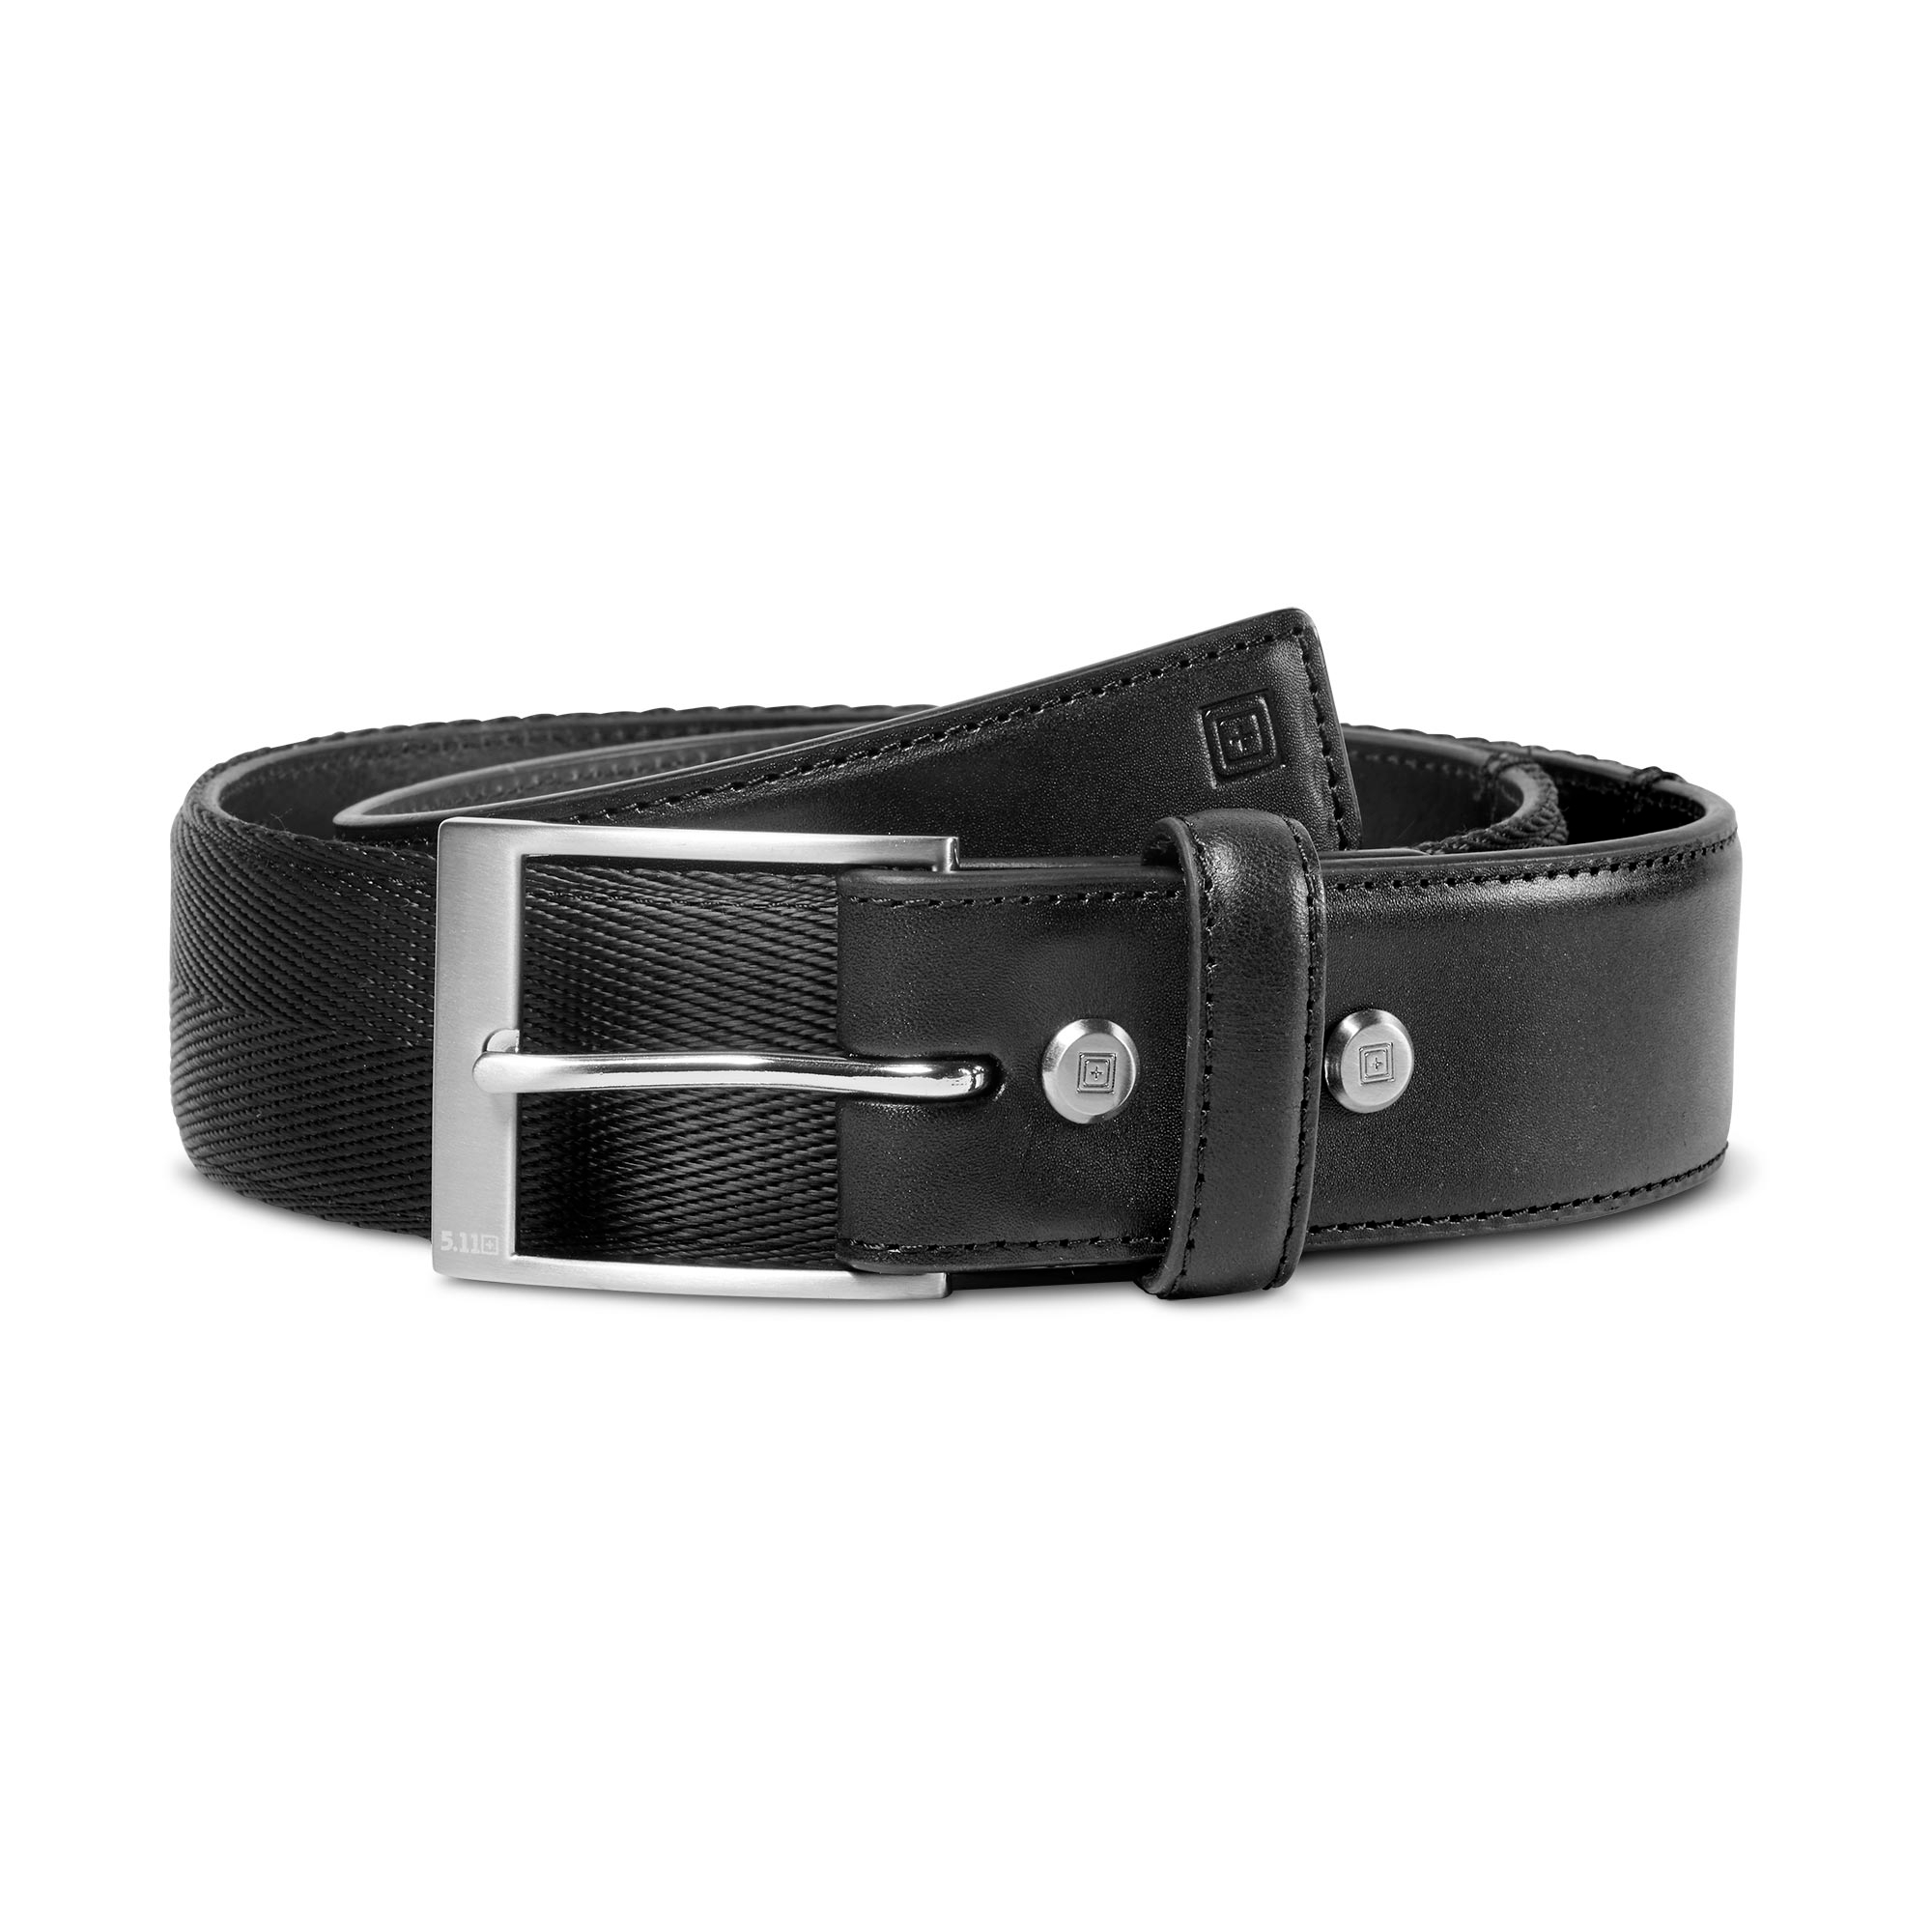 007bf5fd34890 Buy 5.11 Tactical Mission Ready 1.5 Belt - 5.11 Tactical Online at ...